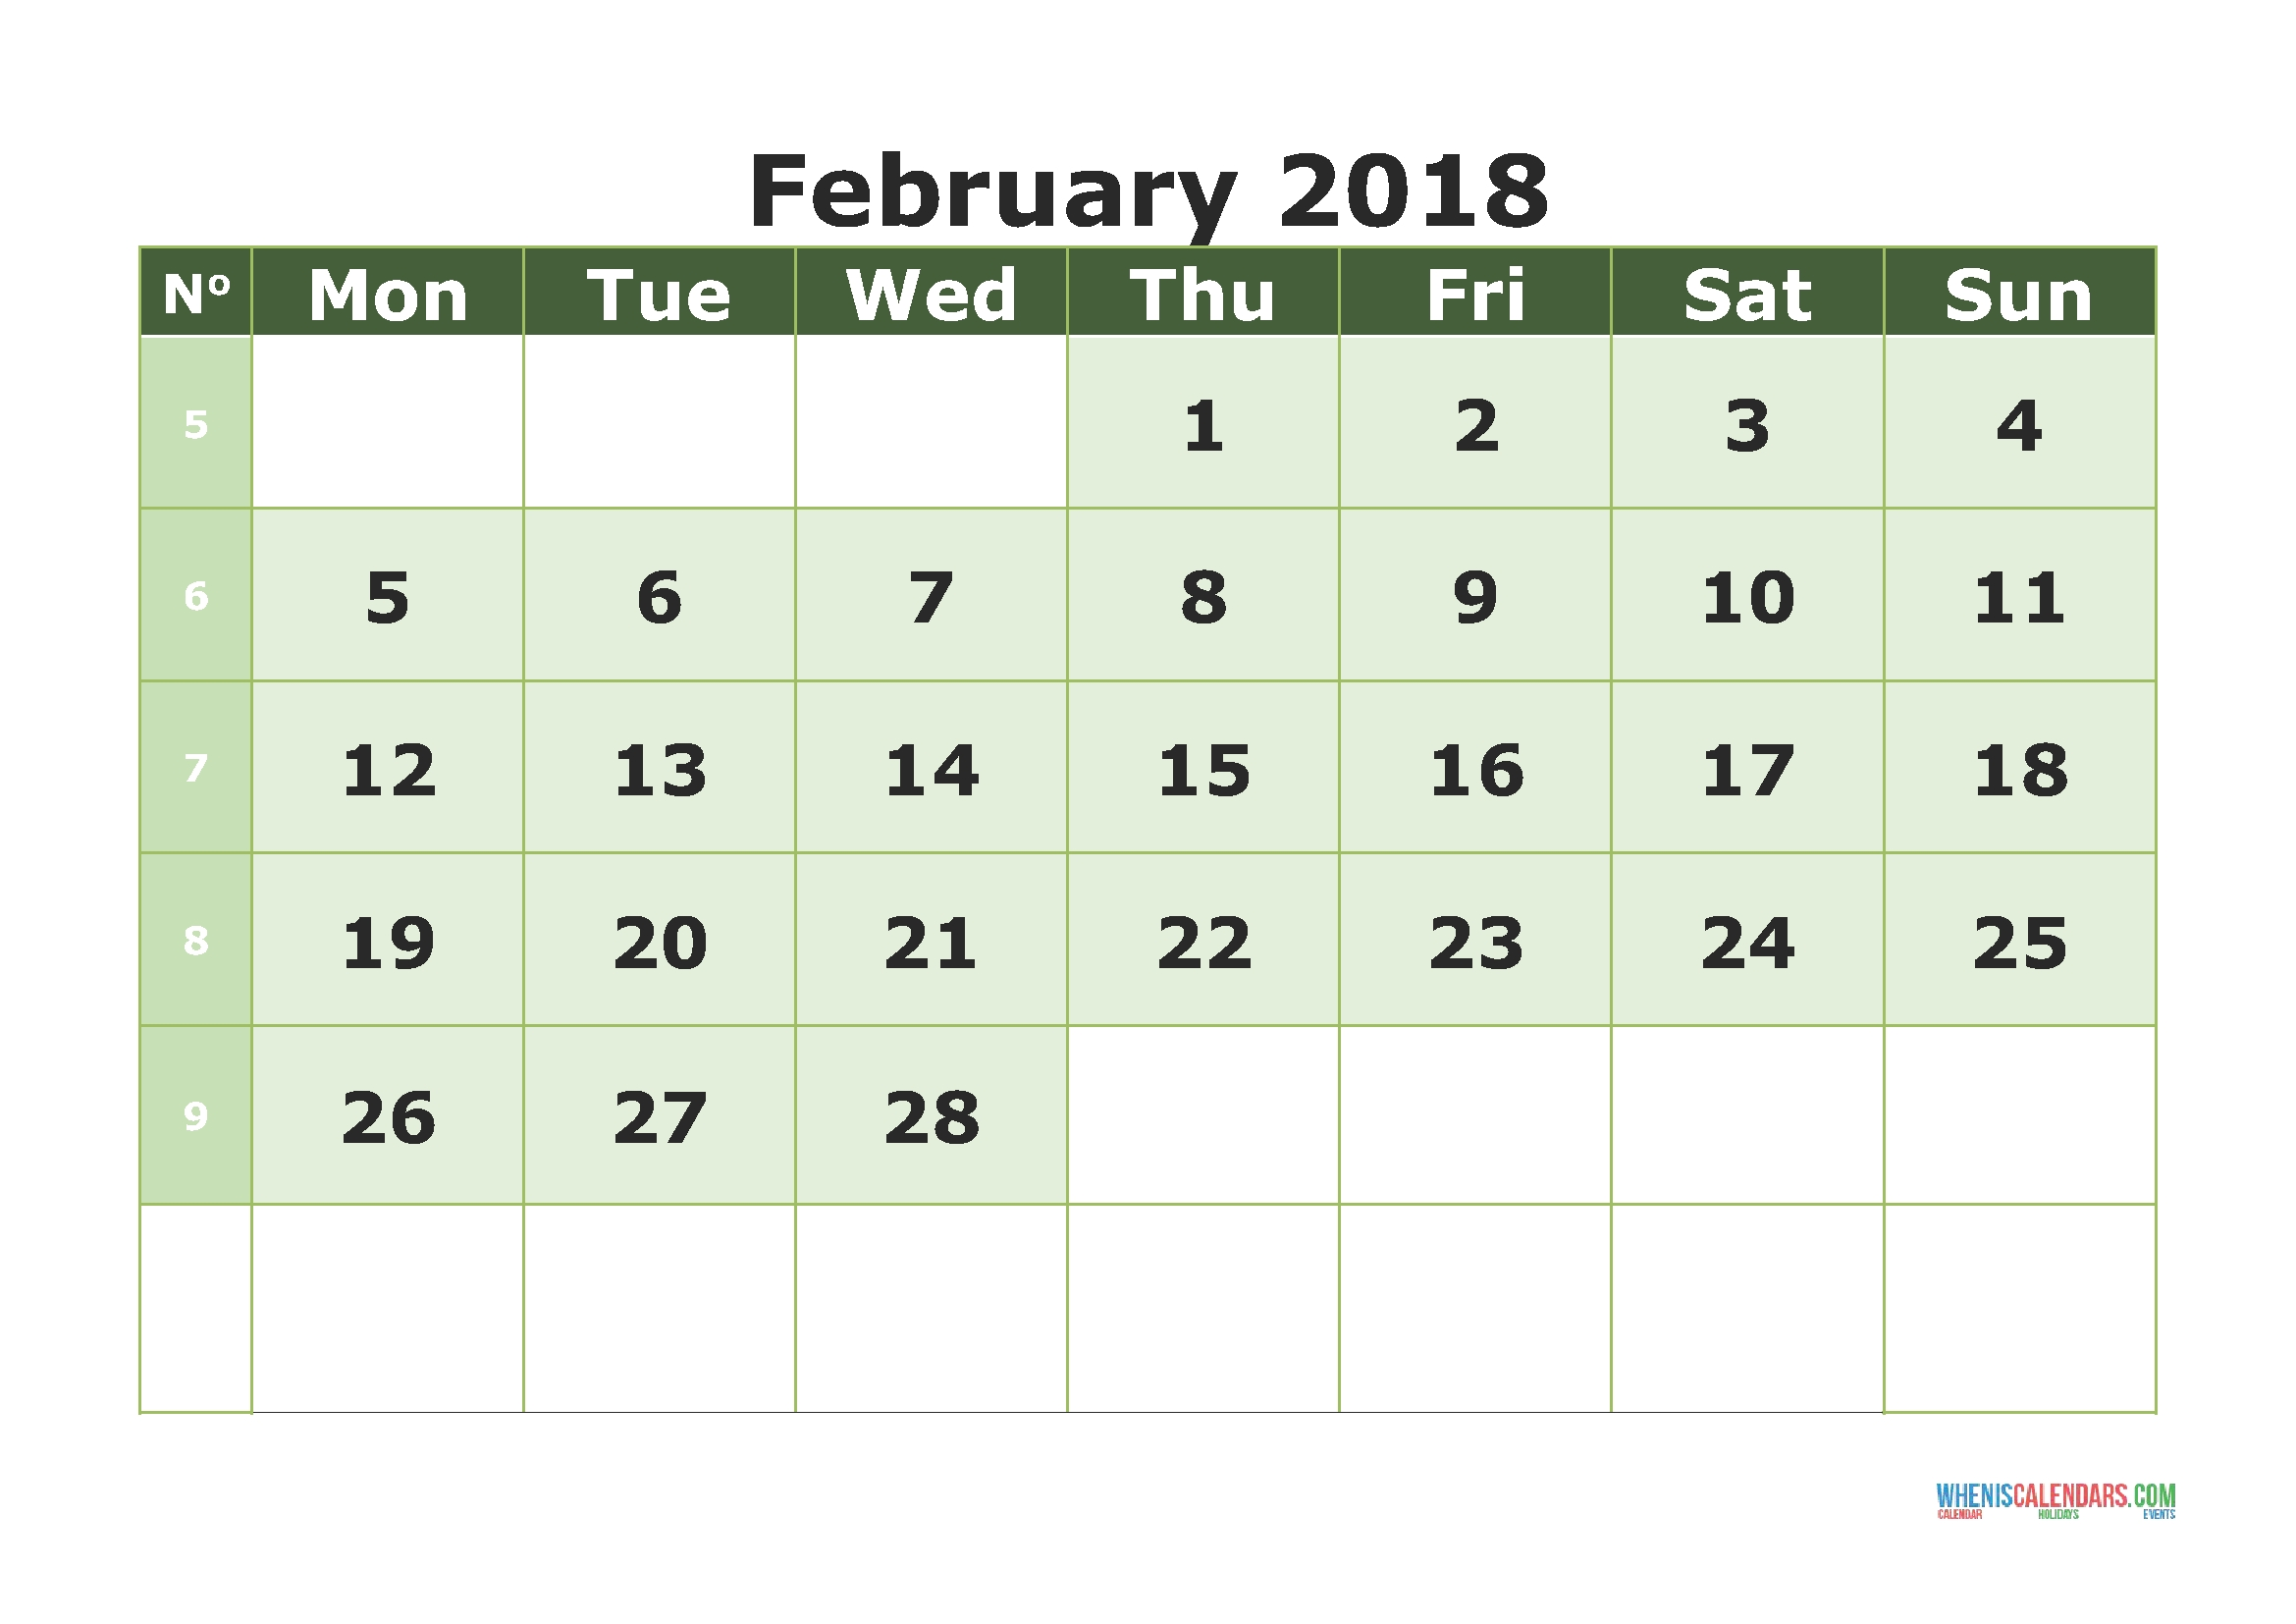 Printable Calendar February 2018 With Week Numbers (Monday